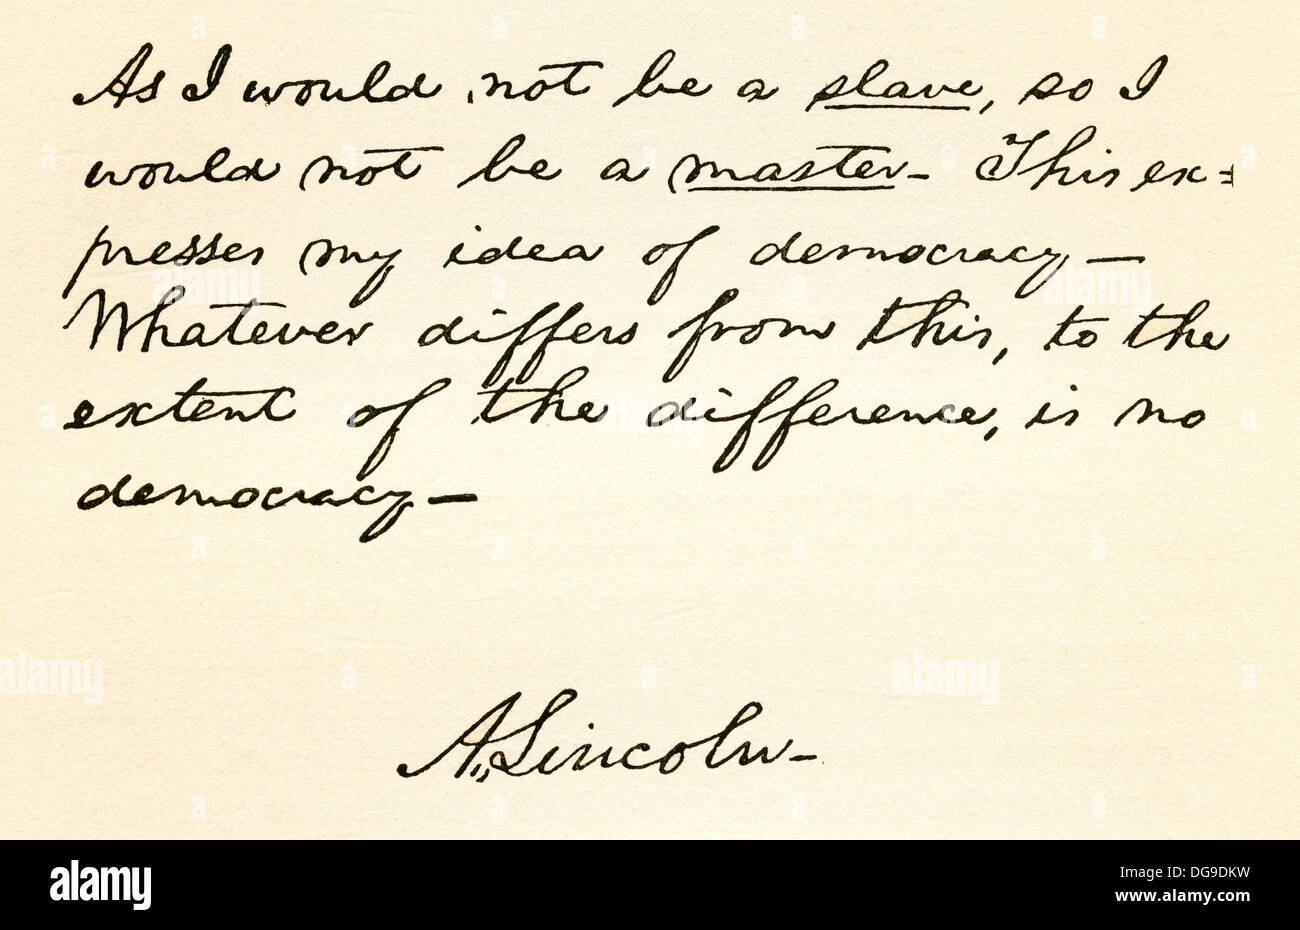 Astounding Handwriting And Signature Of Abraham Lincoln 1809 1865 16Th Hairstyles For Men Maxibearus